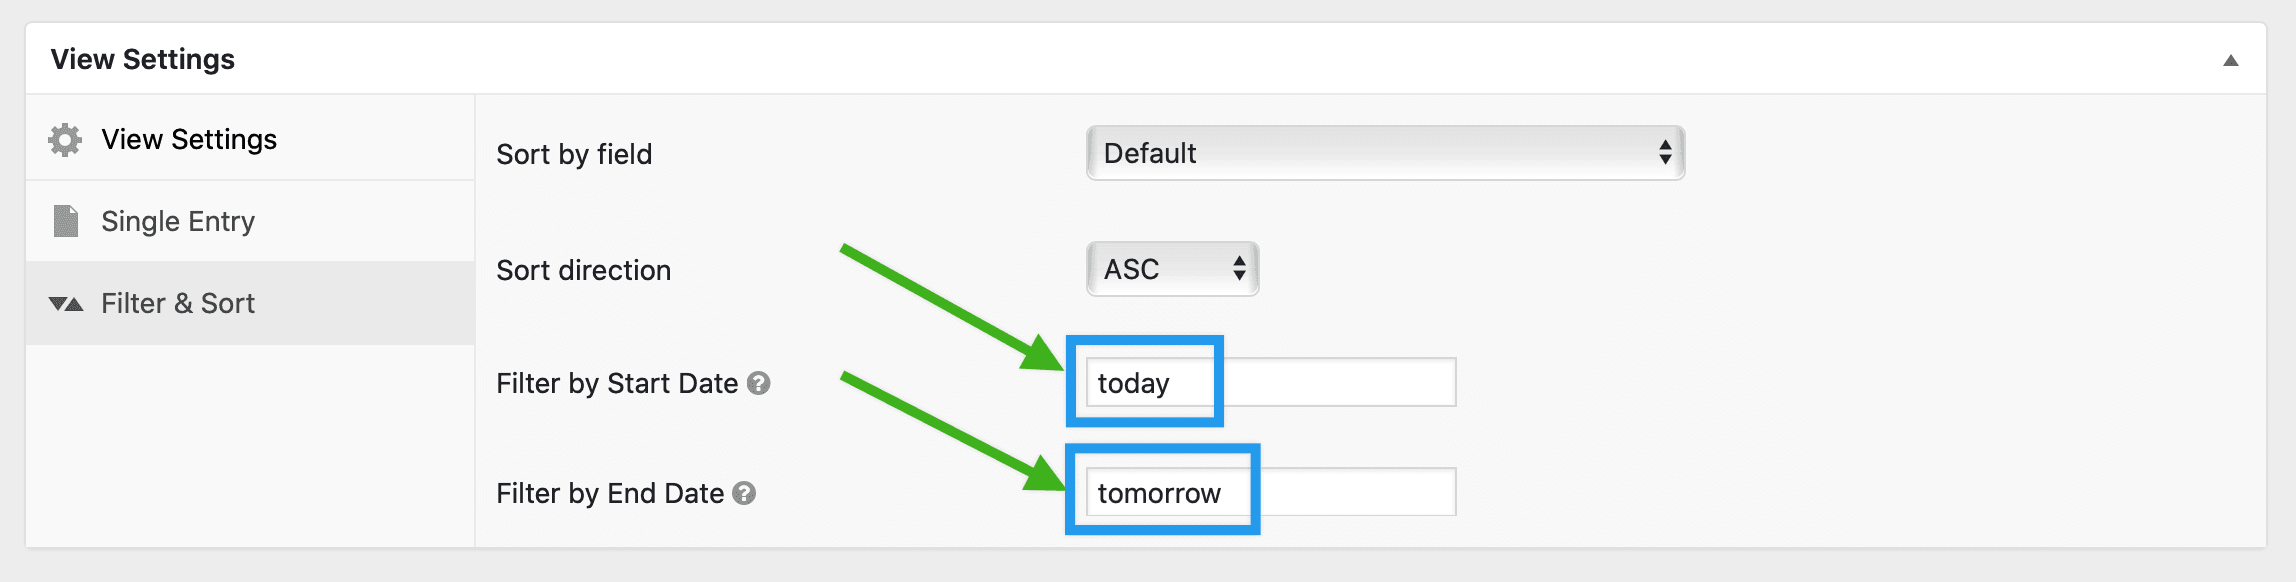 Type the word 'today' into the Filter by Start Date box and 'tomorrow' into the End Date box.